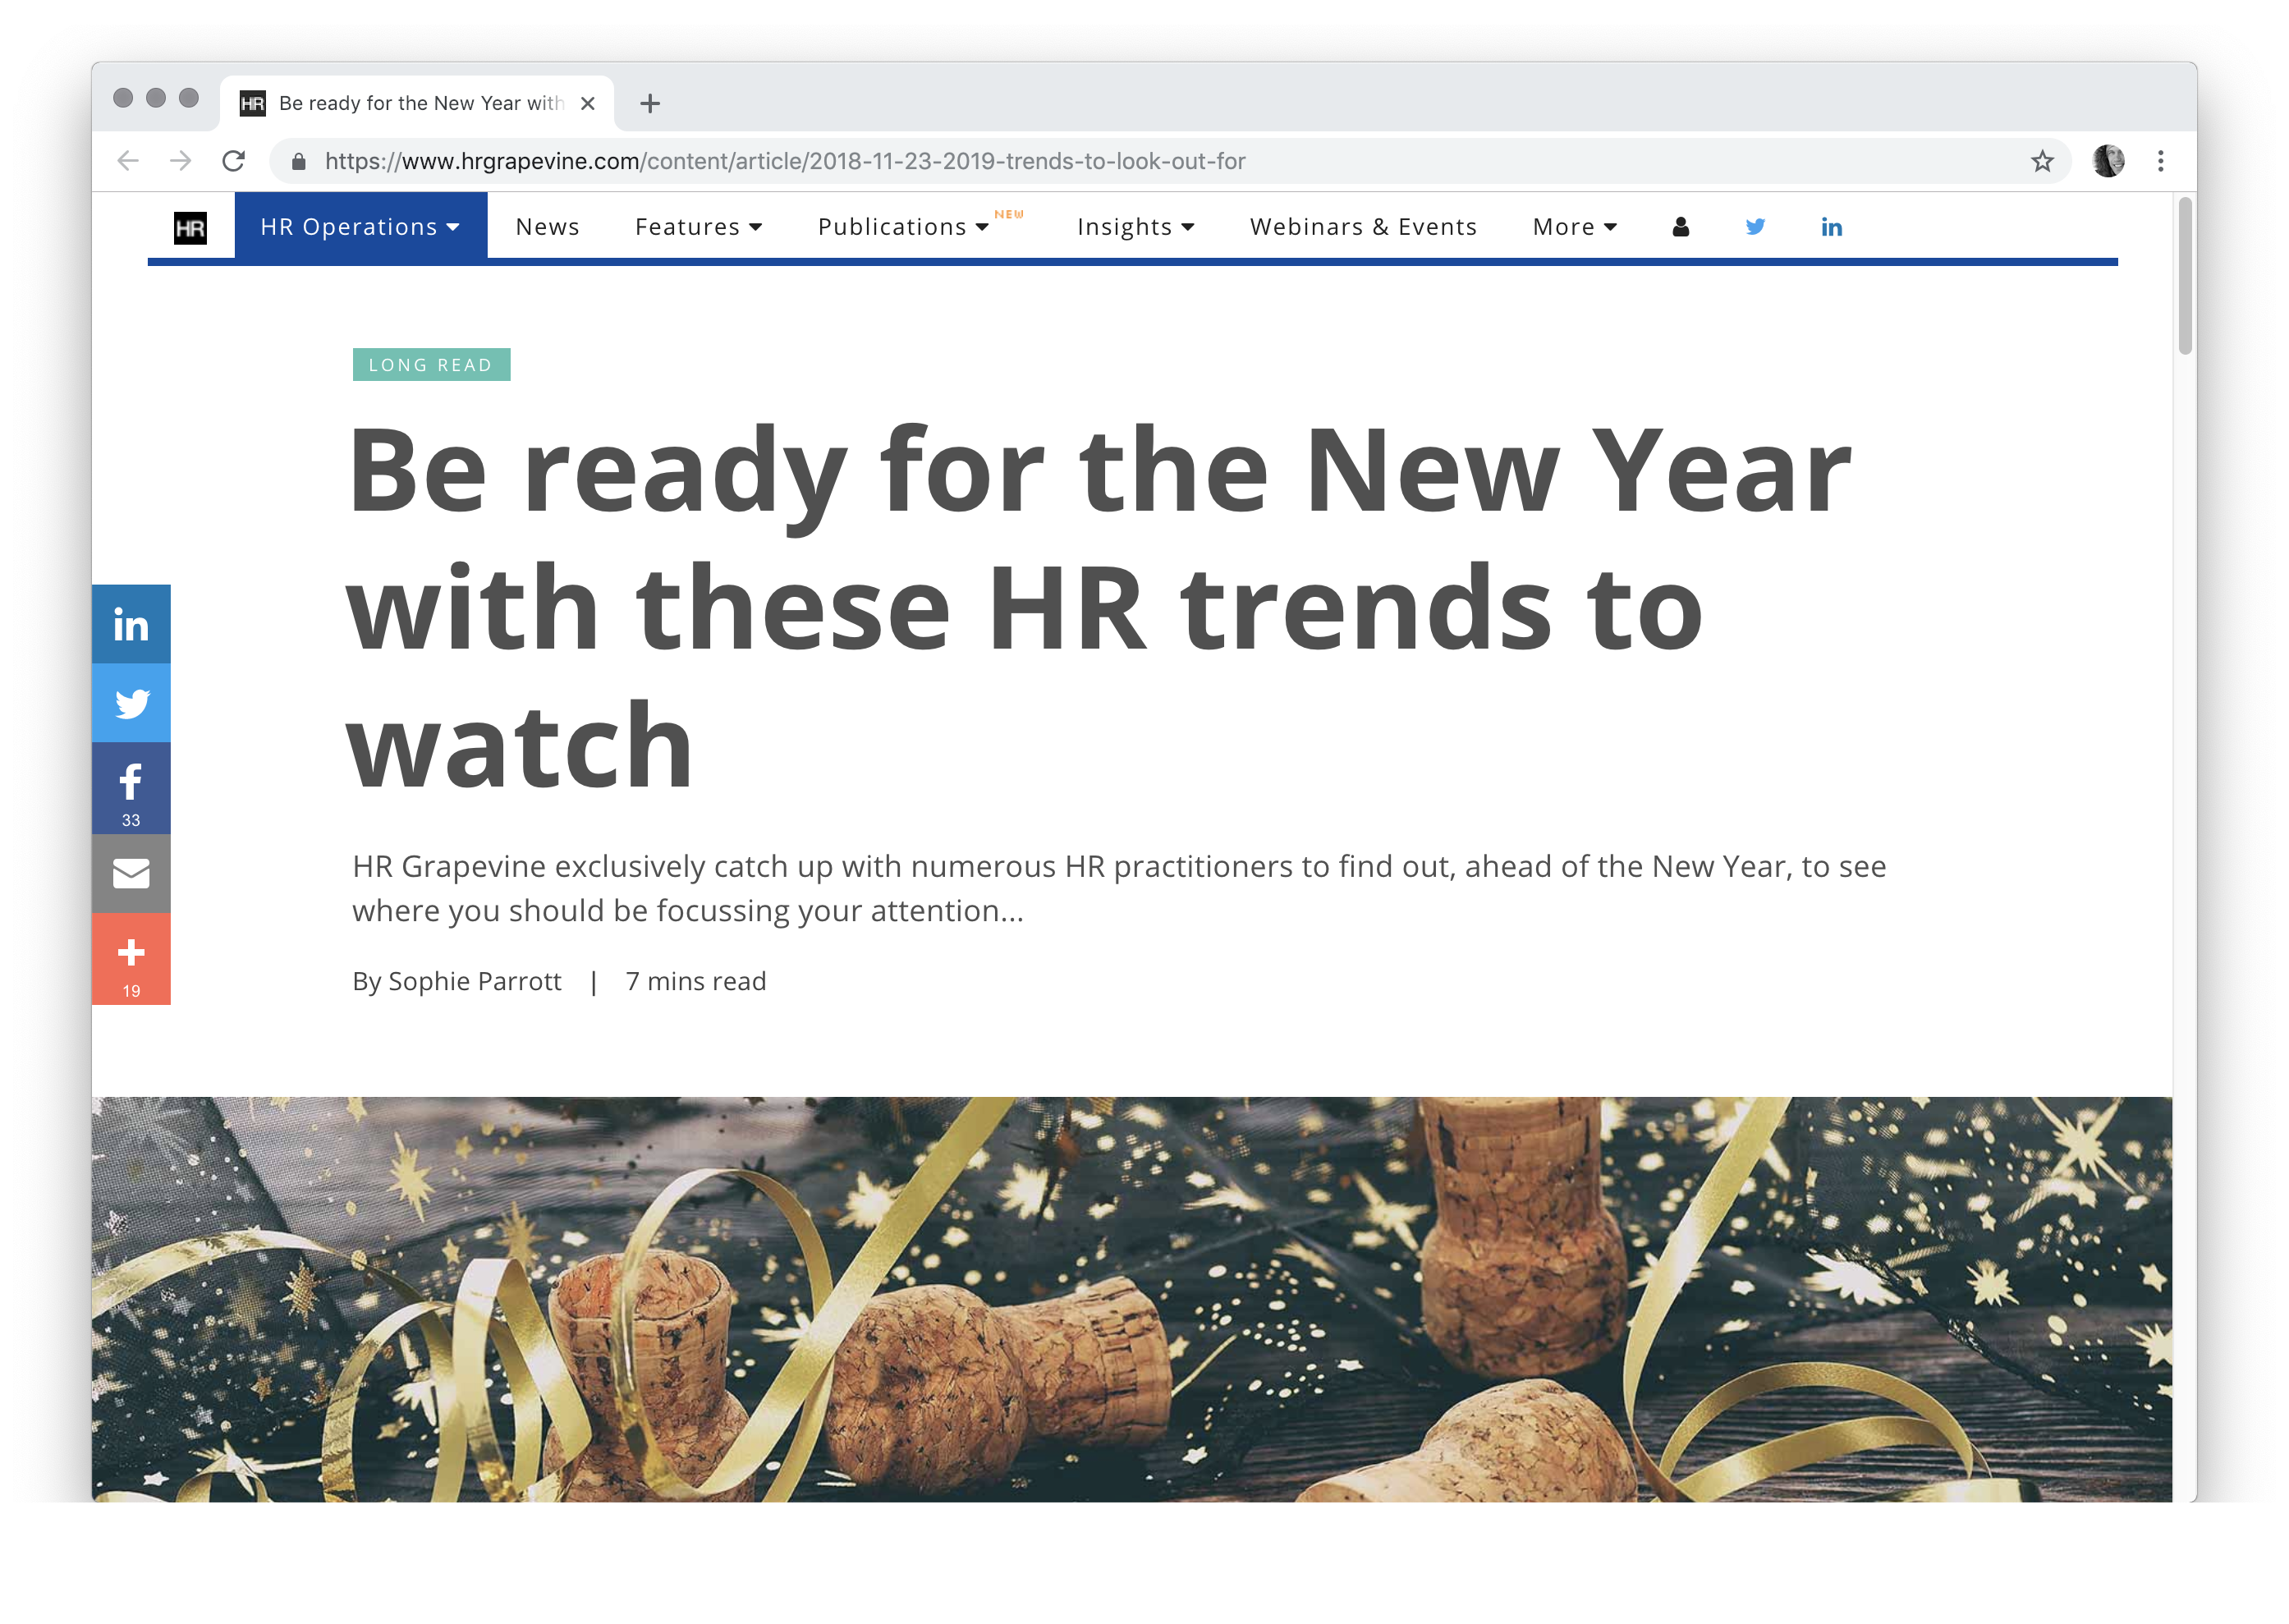 Be ready for the New Year with these HR trends to watch cakehr